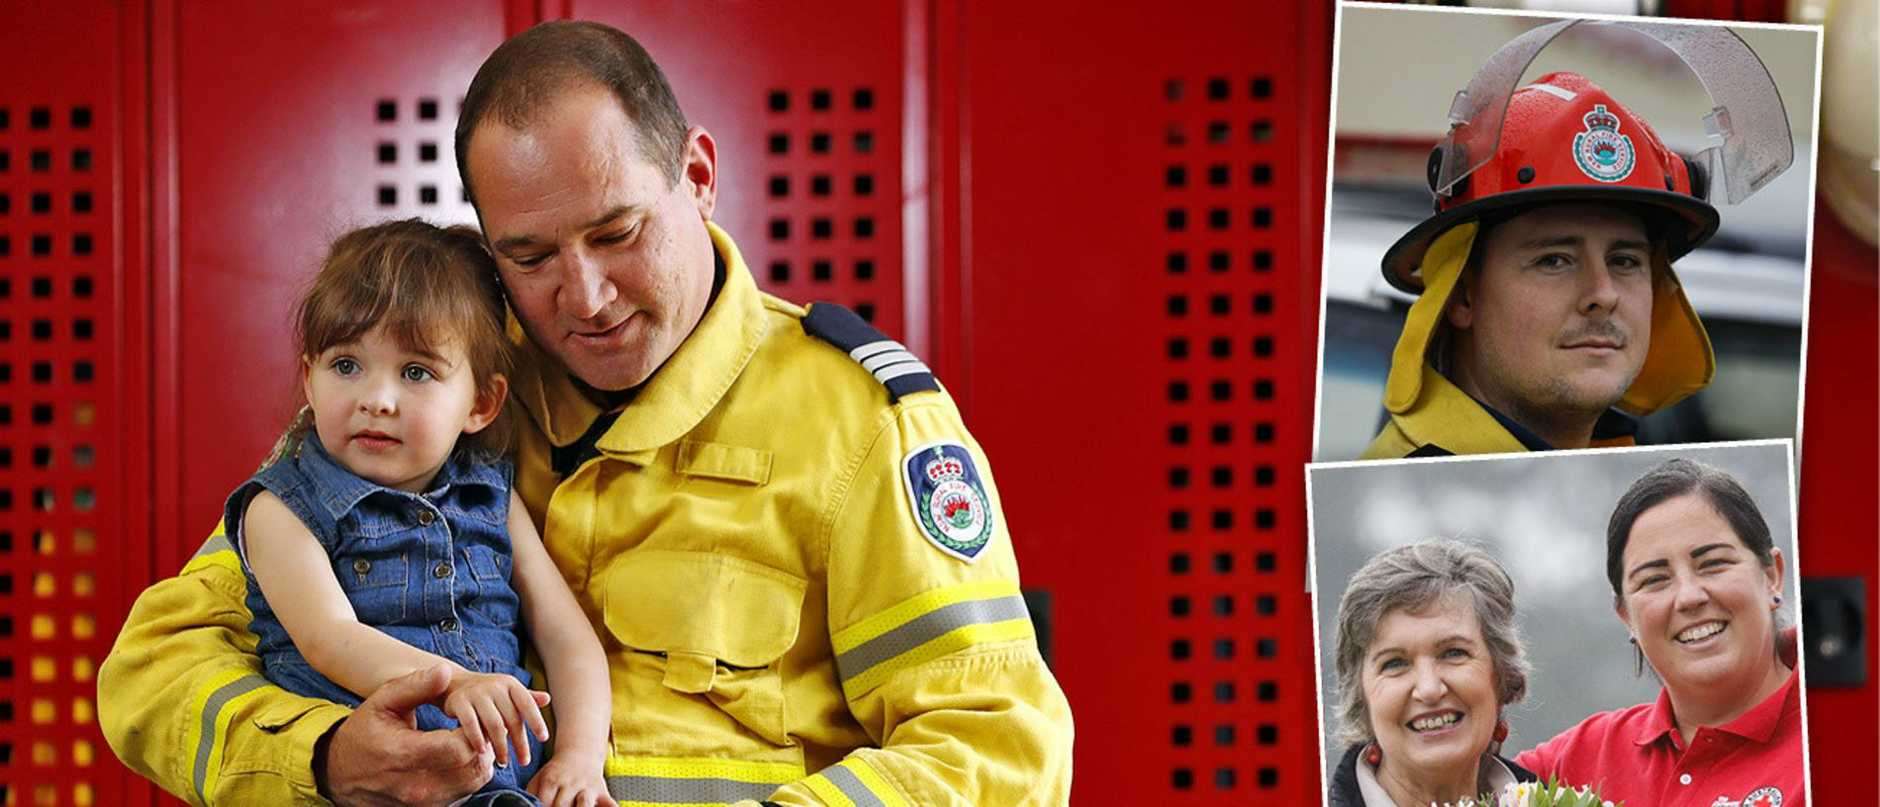 65,000 people will receive an official NSW Bushfire Emergency Citation.